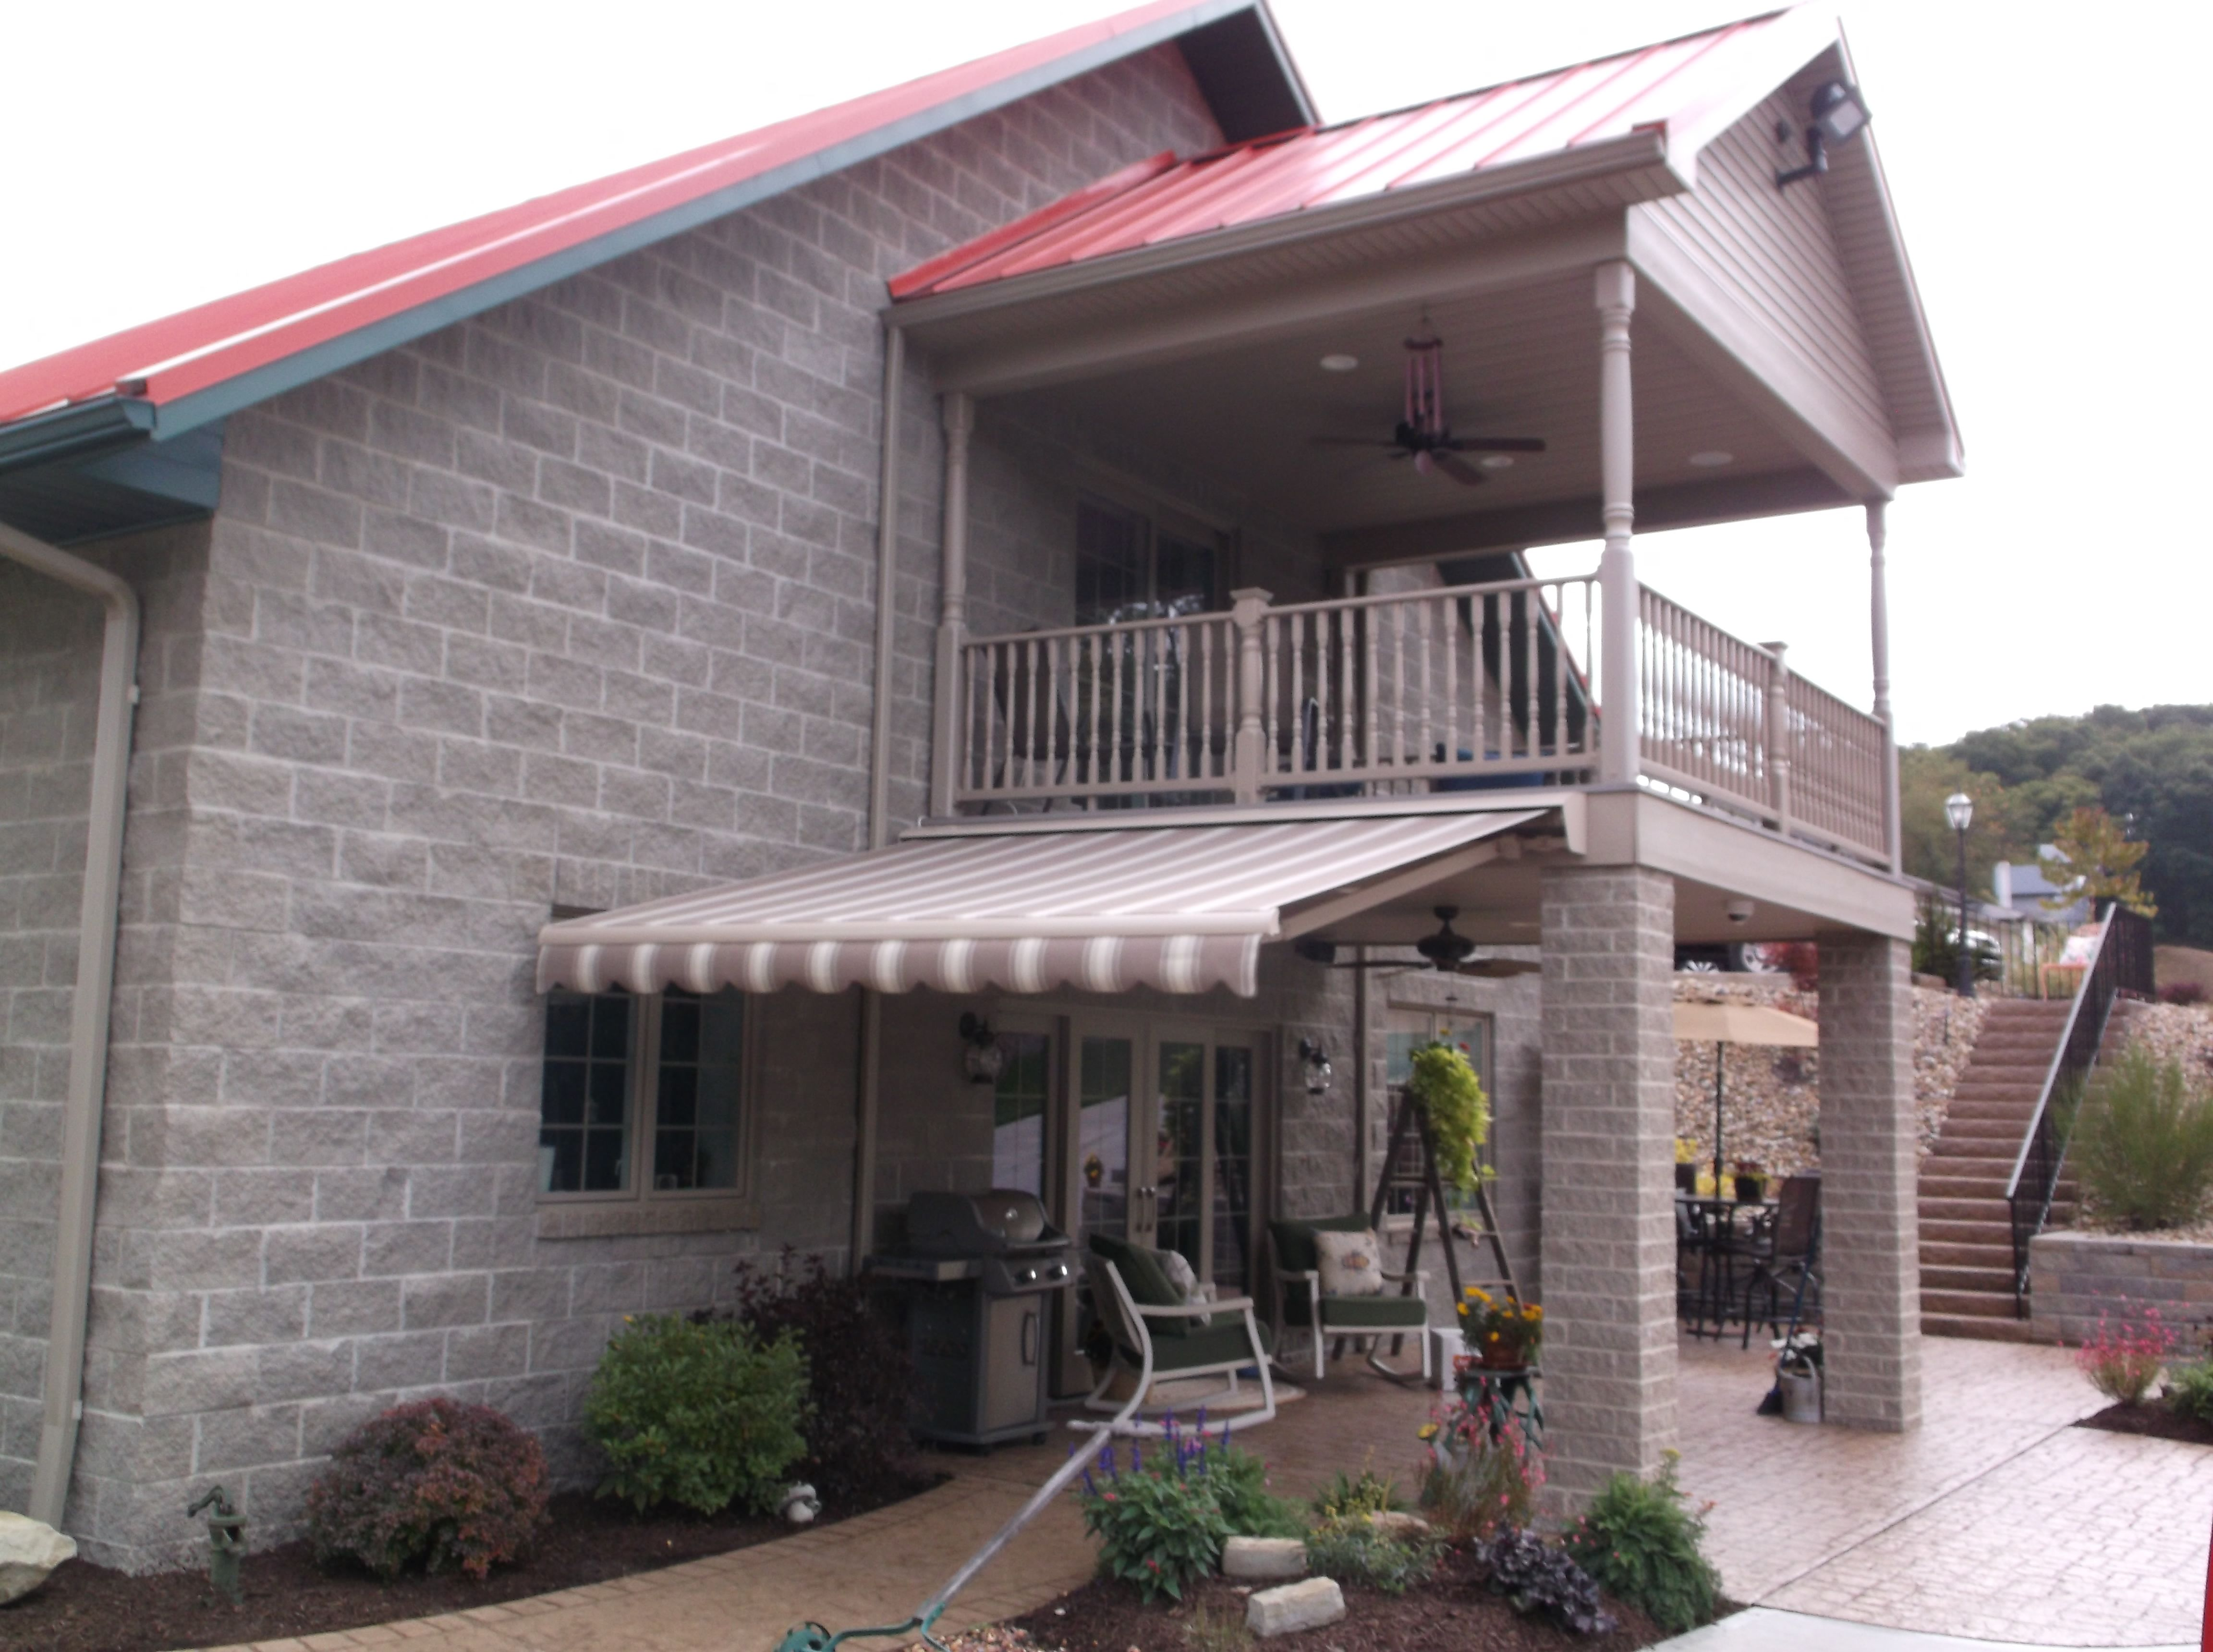 Sunair Retractable Awning Over Back Corner Patio!